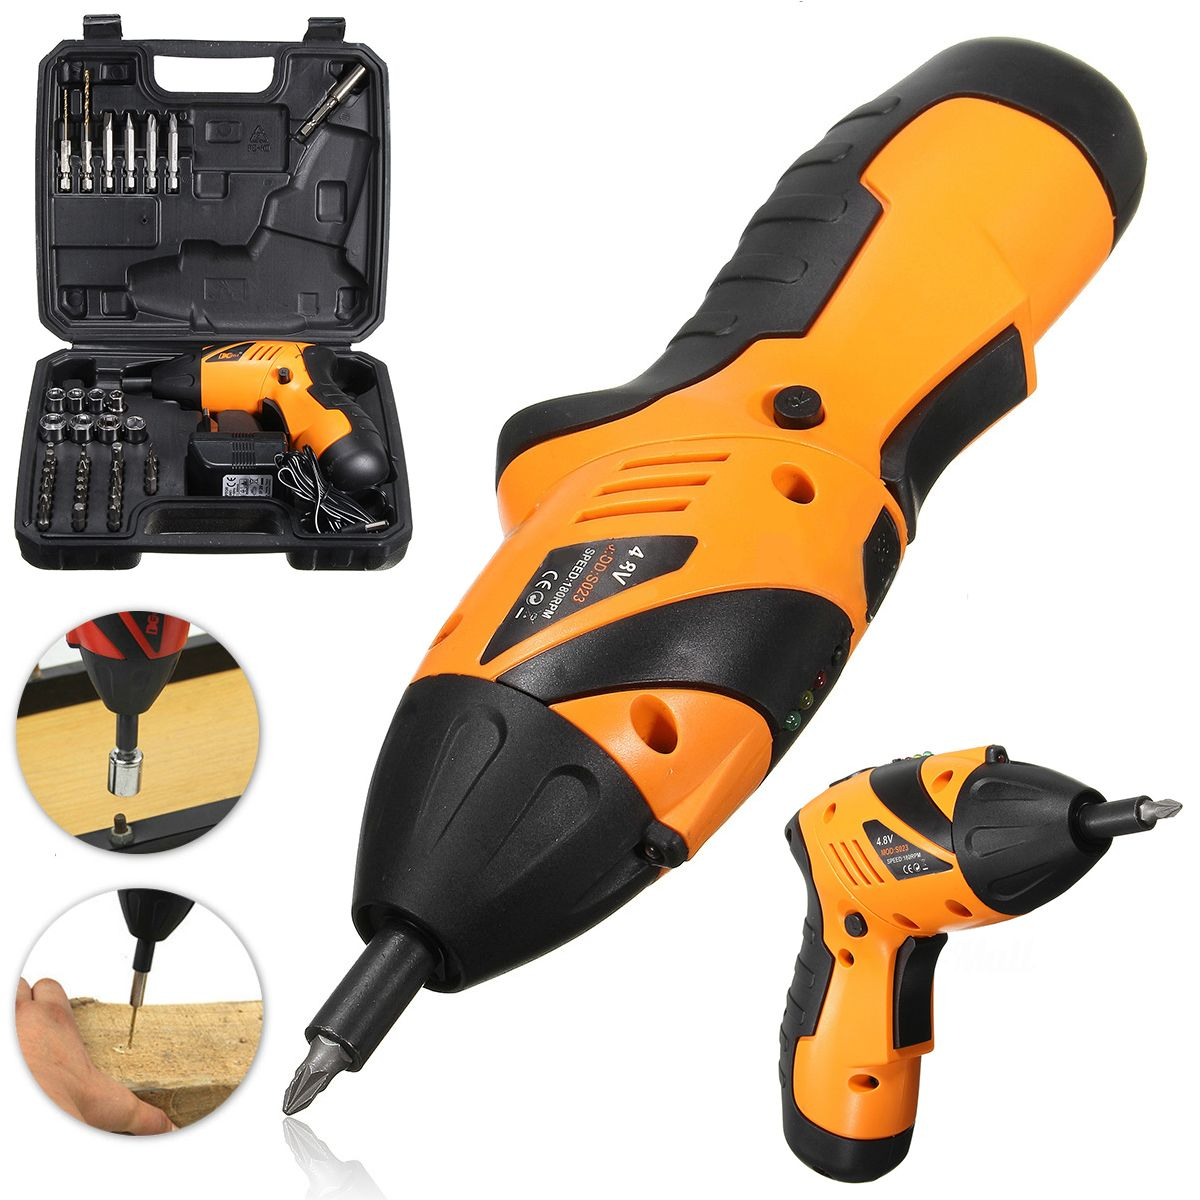 DWZ 45 in1 Power Tool Cordless Electric Screwdriver Drill Kit Set EU Plug<br>